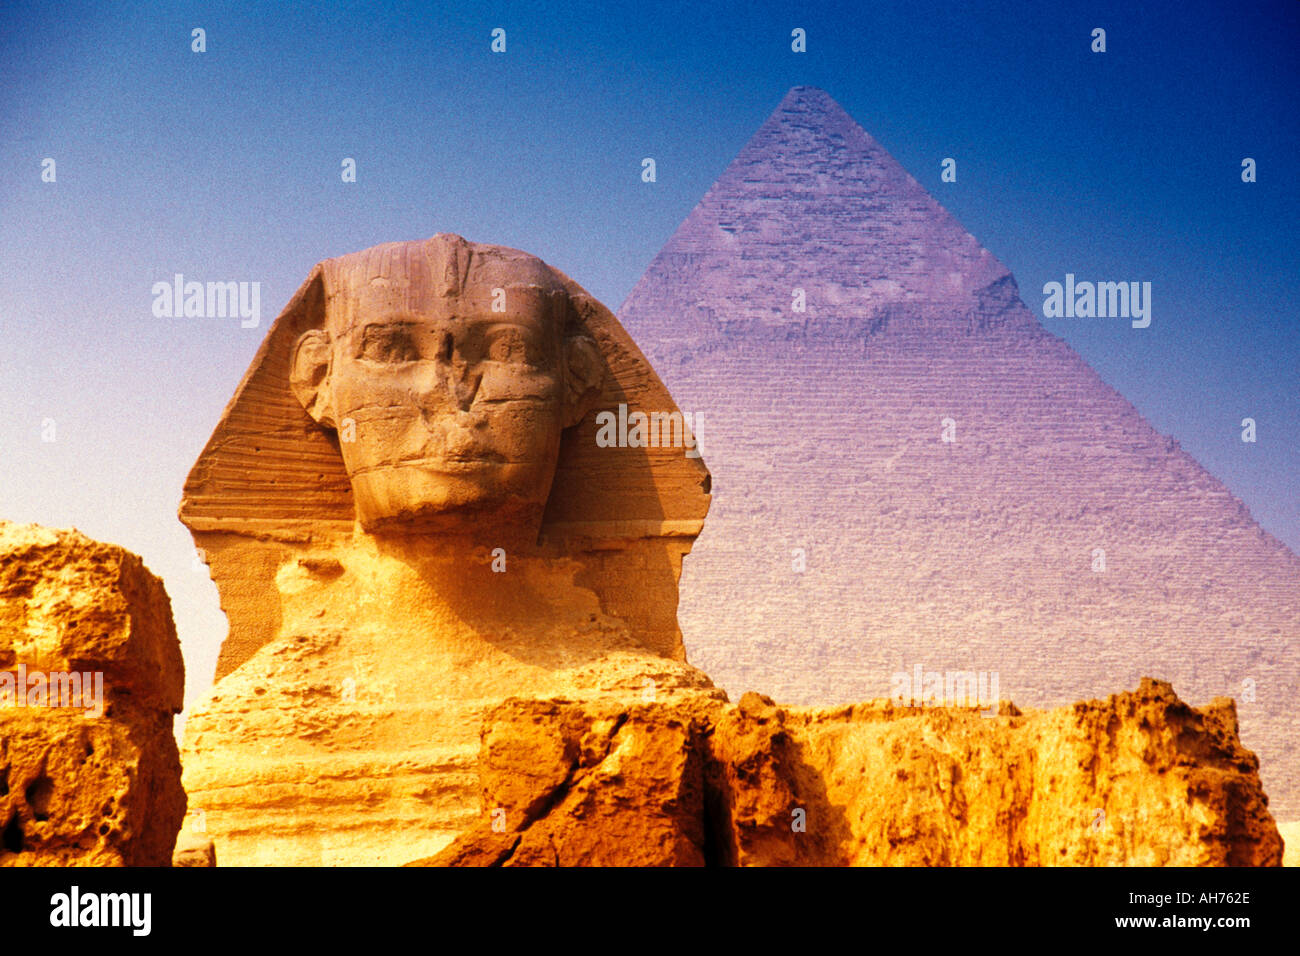 Egypt Sphinx at the Pyramides of Gizeh - Stock Image